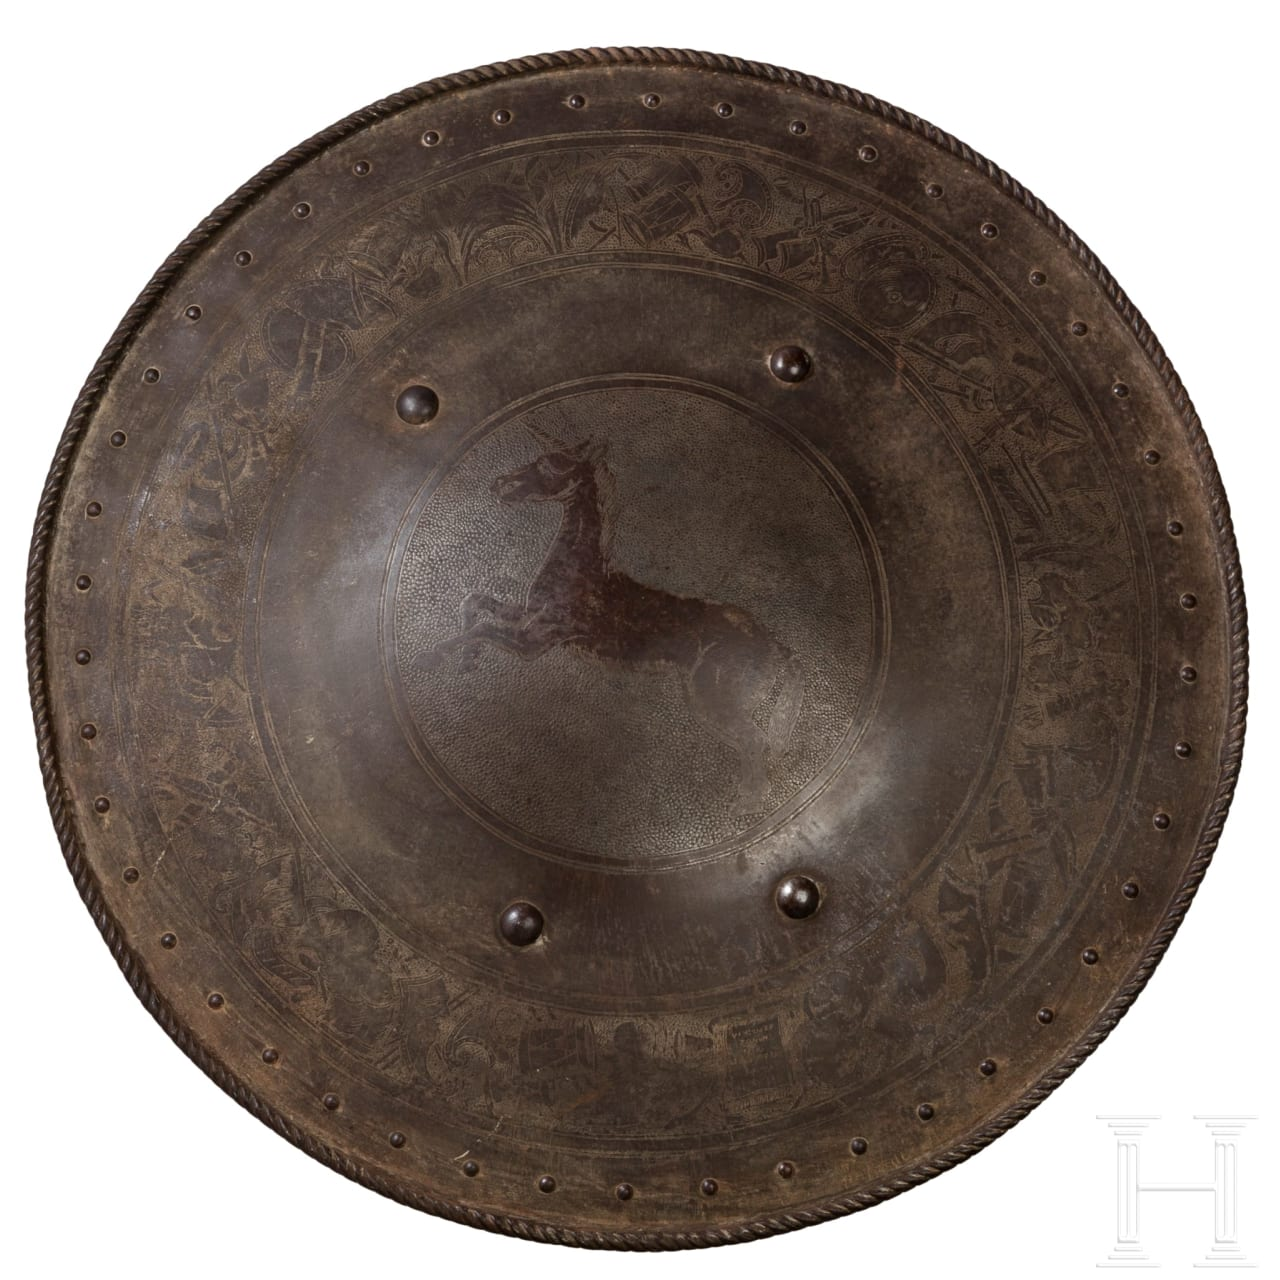 A round shield, collector's replica in the style of the Renaissance